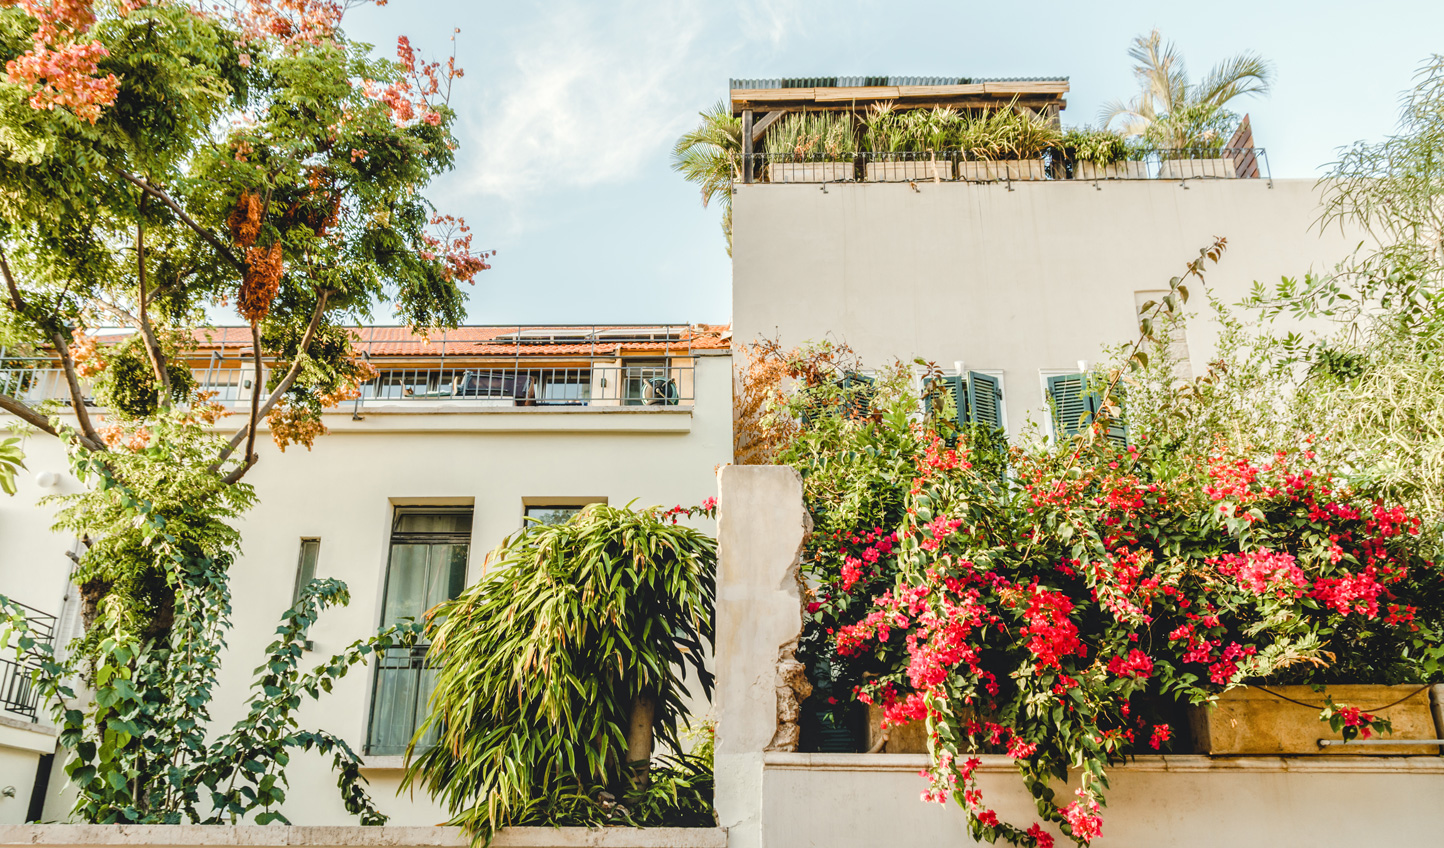 Stroll through the picturesque streets of Neve Tzedek